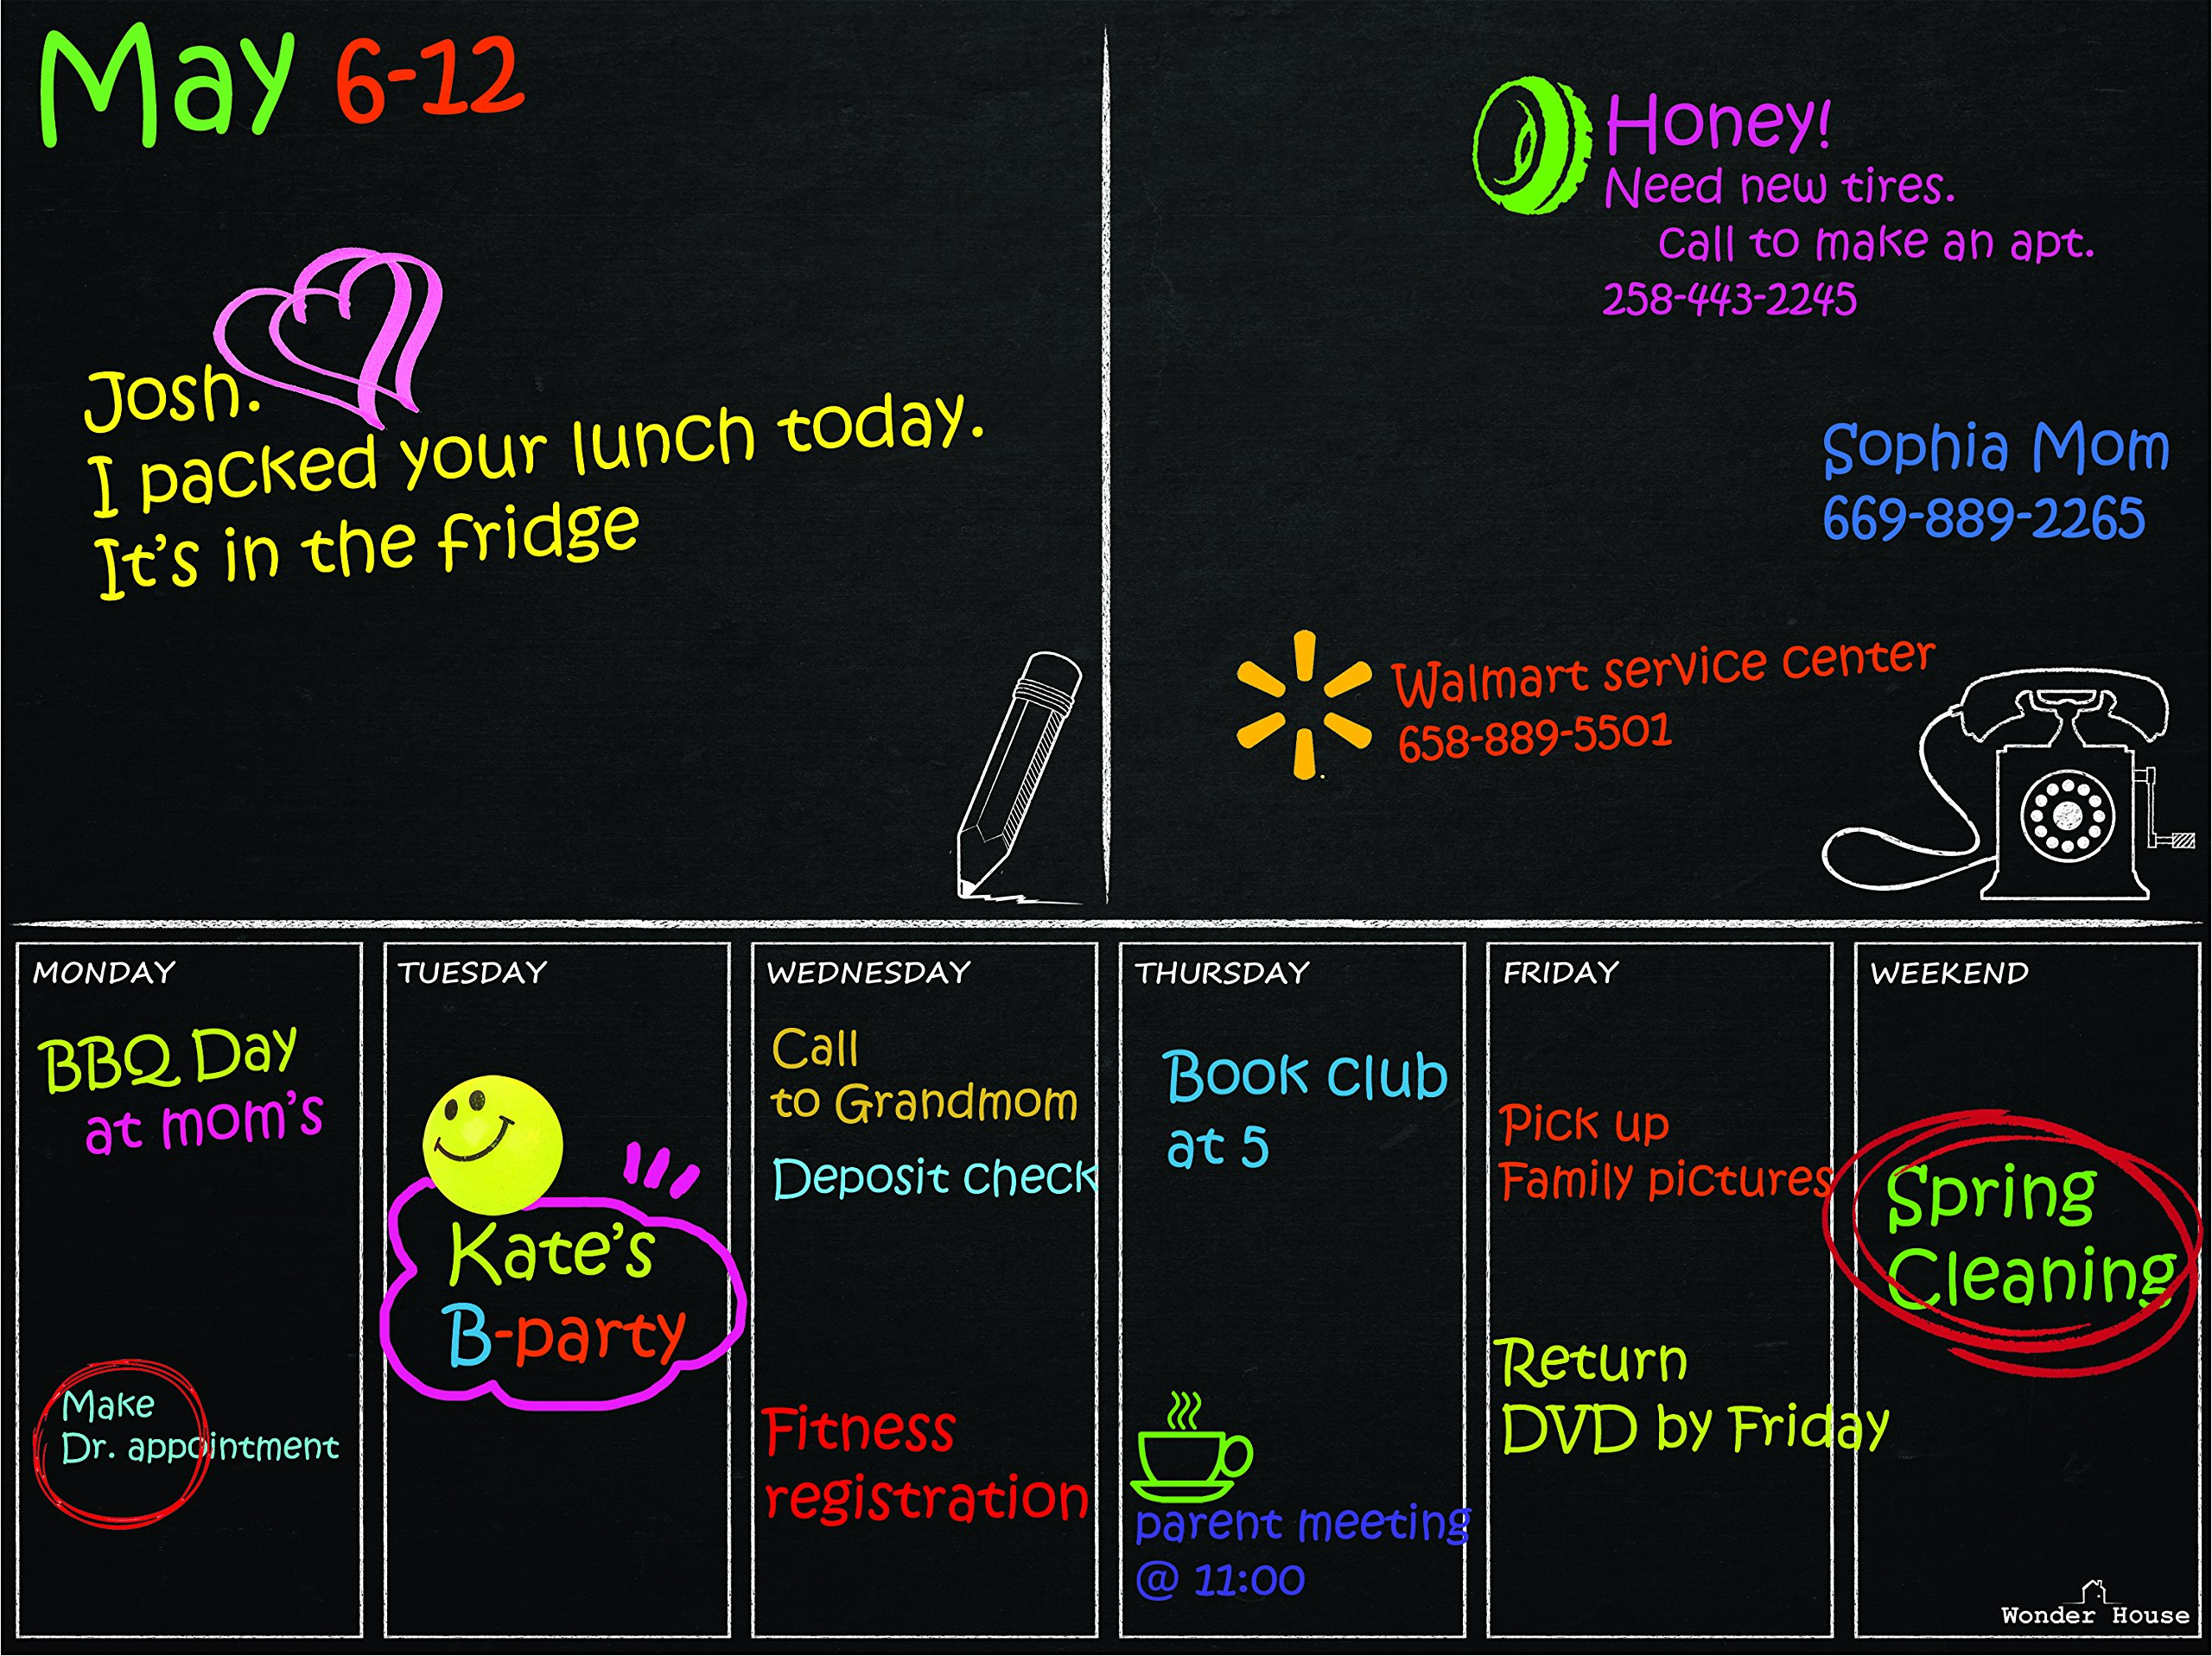 Weekly Phone Note Purpose Magnetic Refrigerator Calendar Board Dry Erase Black Chalkboard Smart Job Planner To Do List Schedule Appointment Board Grocery List 12'' X 16'' - Phone-Note Planner